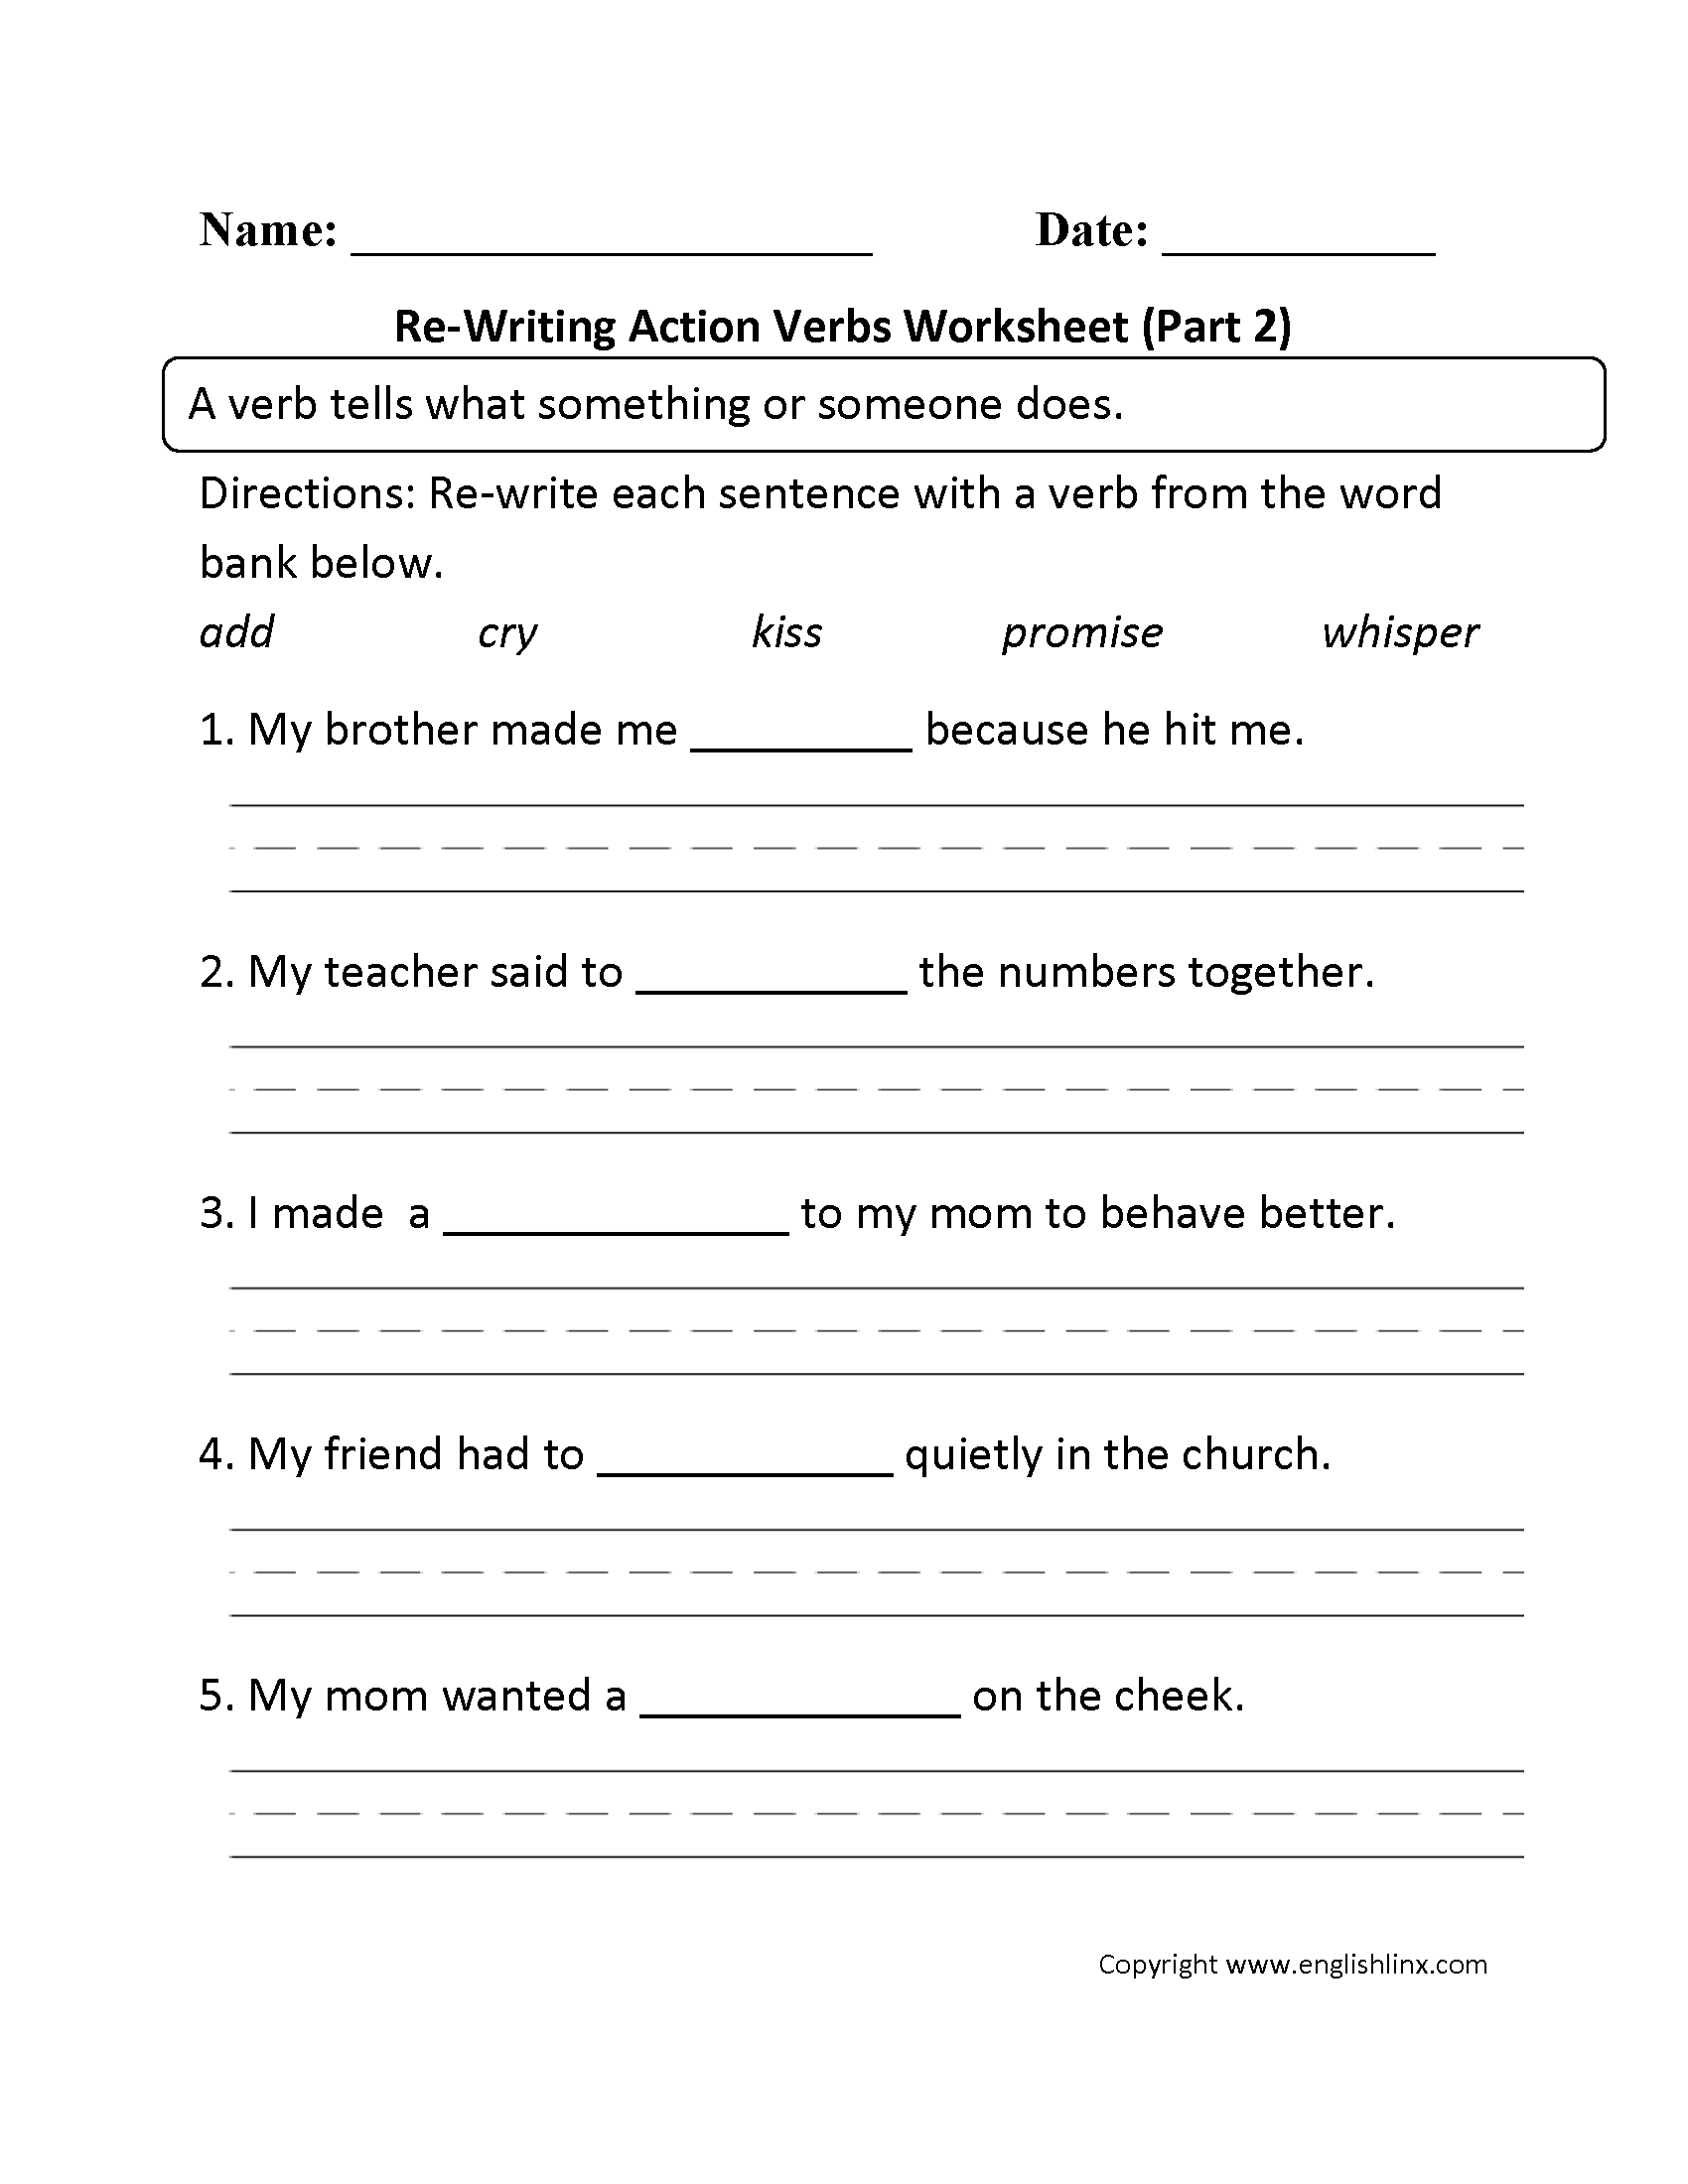 Worksheets English 2 Worksheets verbs worksheets action worksheet part 2